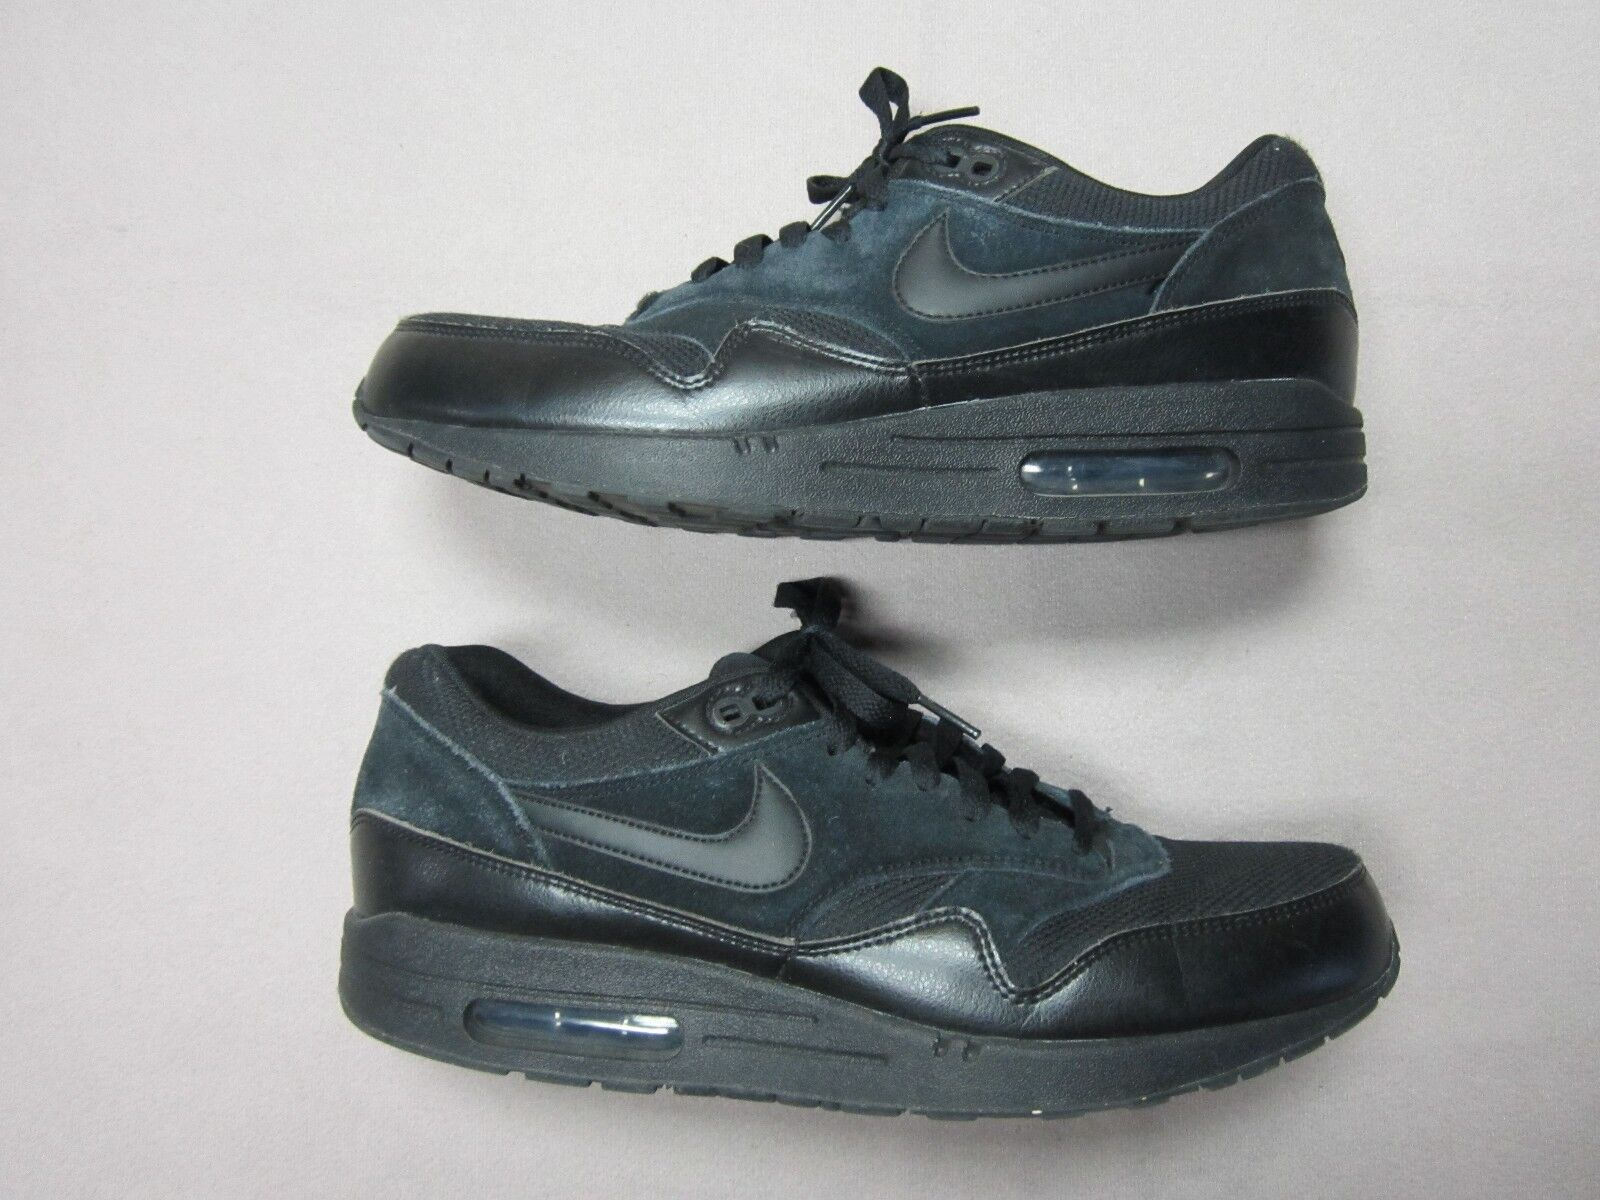 NIKE AIR MAX 1 ESSENTIAL MENS ALL BLACK SNEAKERS SHOES SIZE 11.5 537383-020 RARE